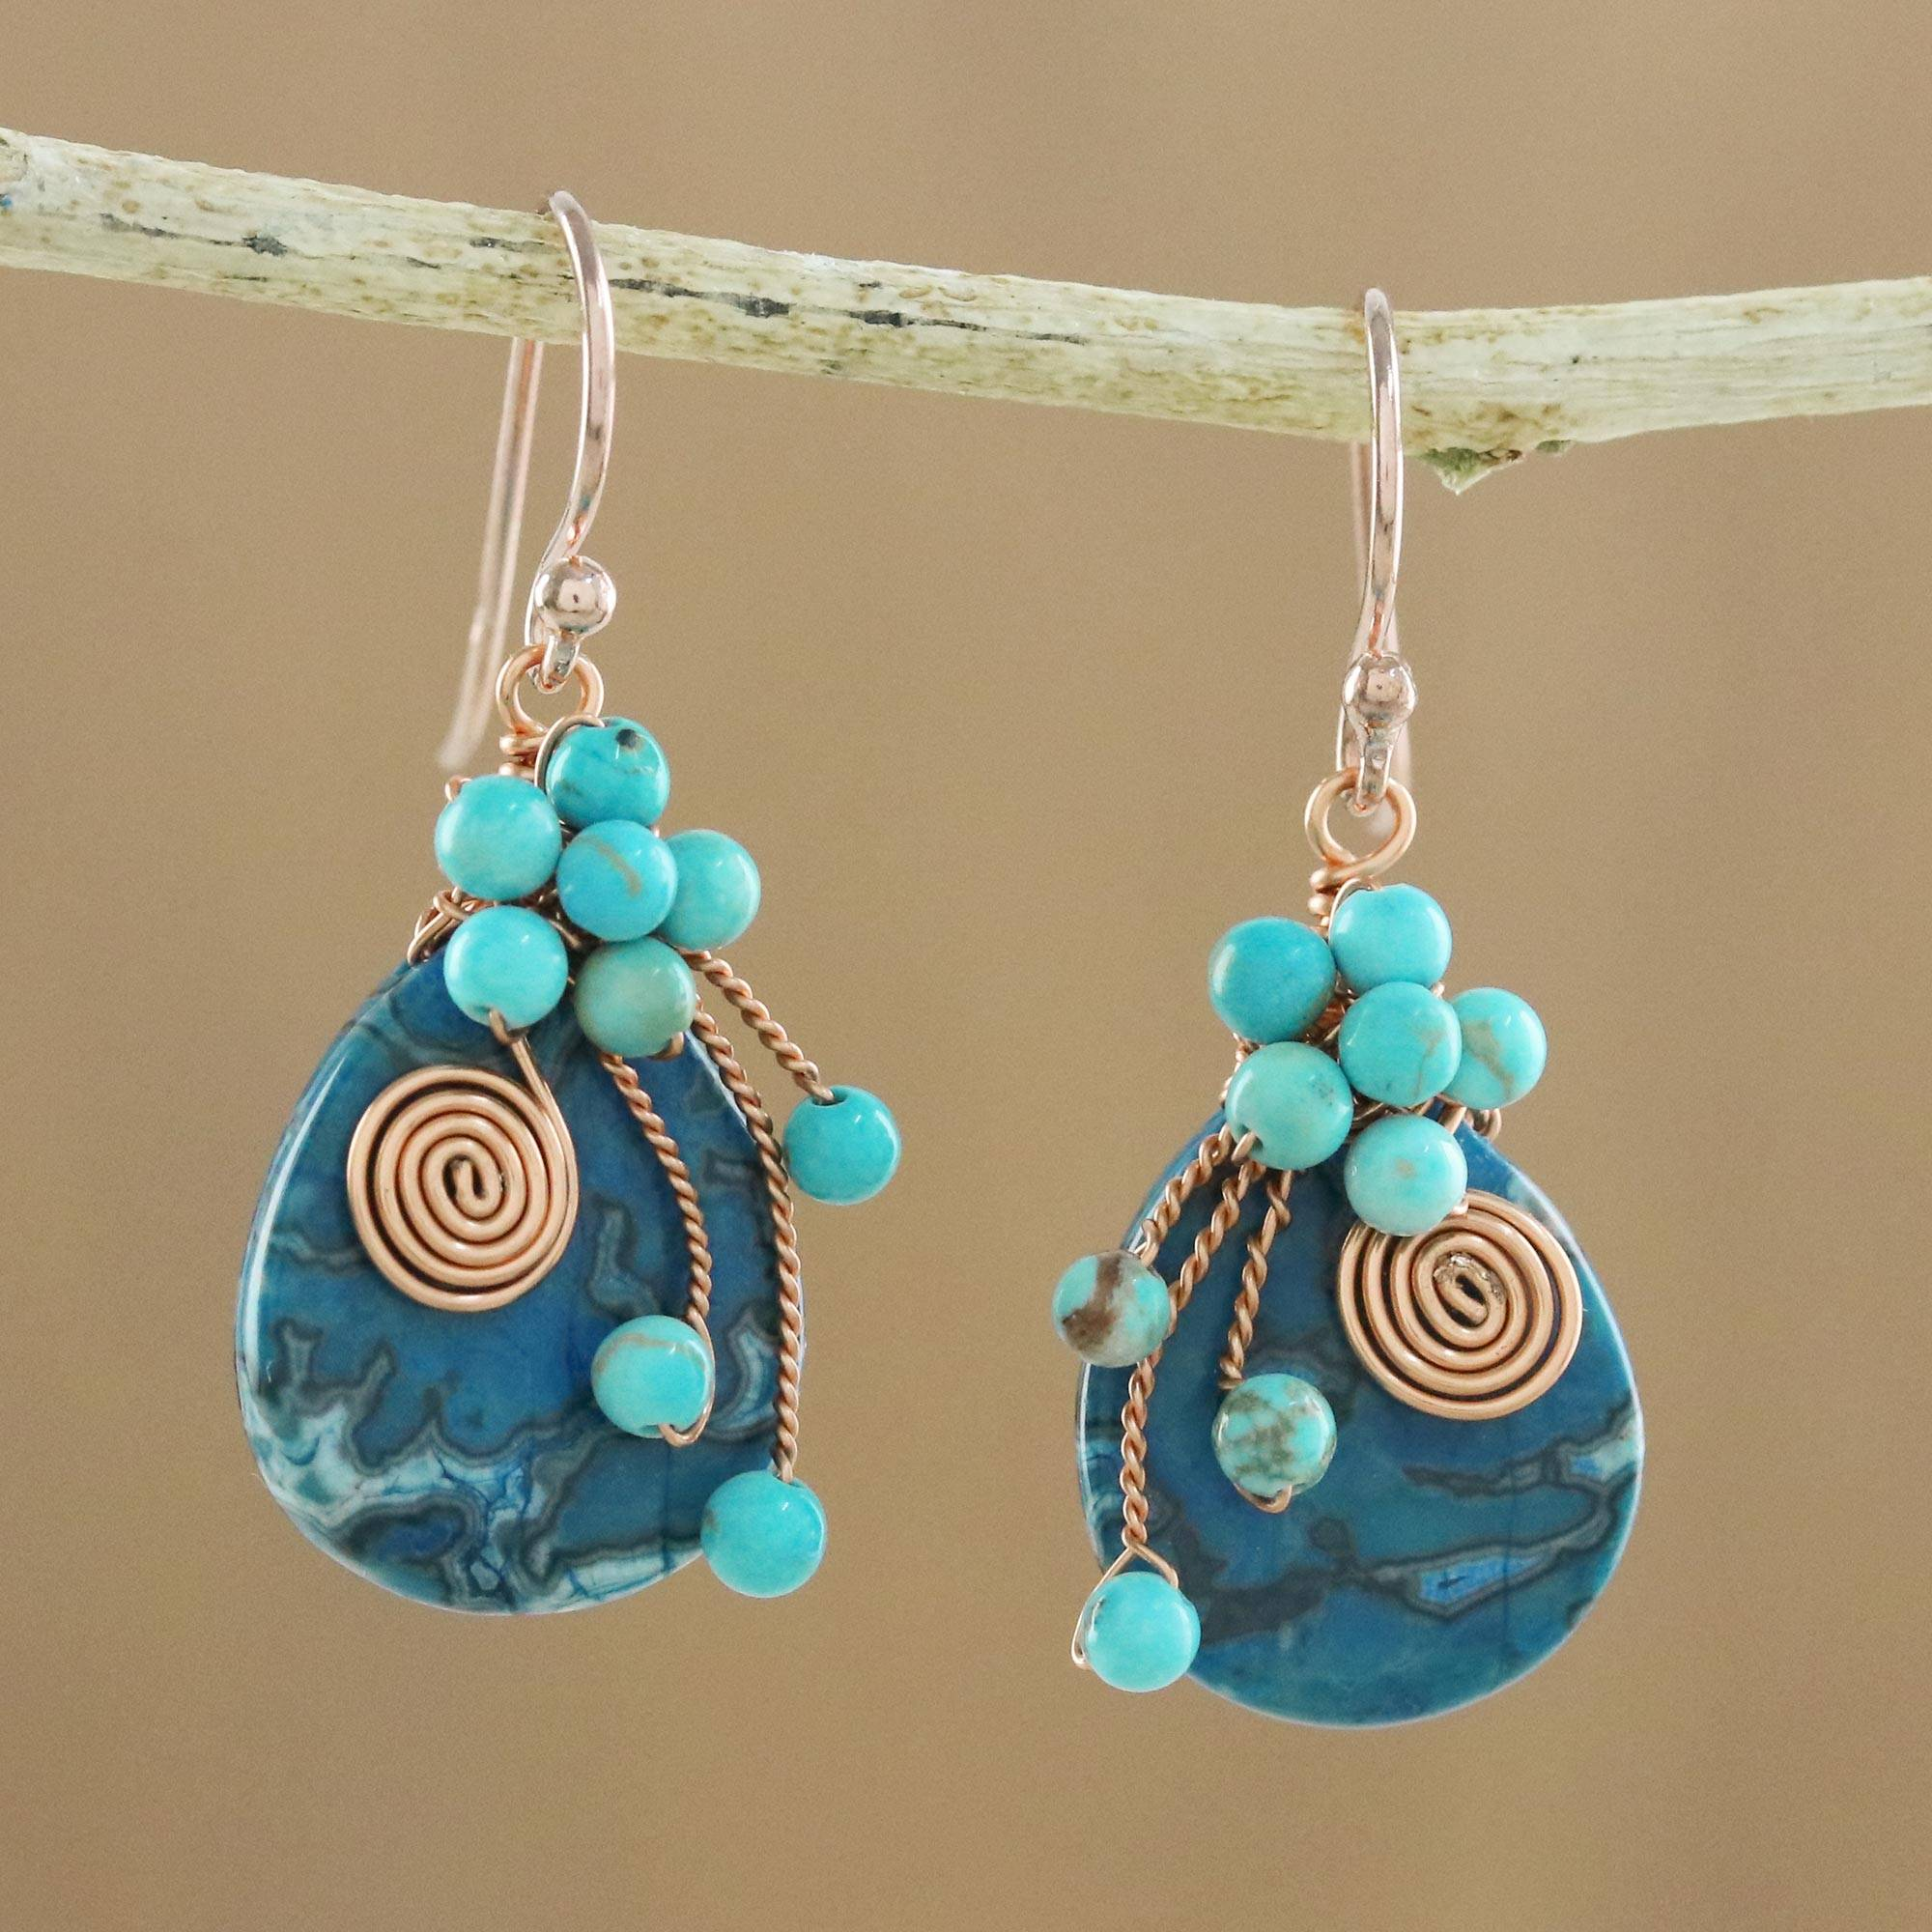 Earrings Guide Ocean Dance Agate and Calcite Beaded Dangle Earrings from Thailand